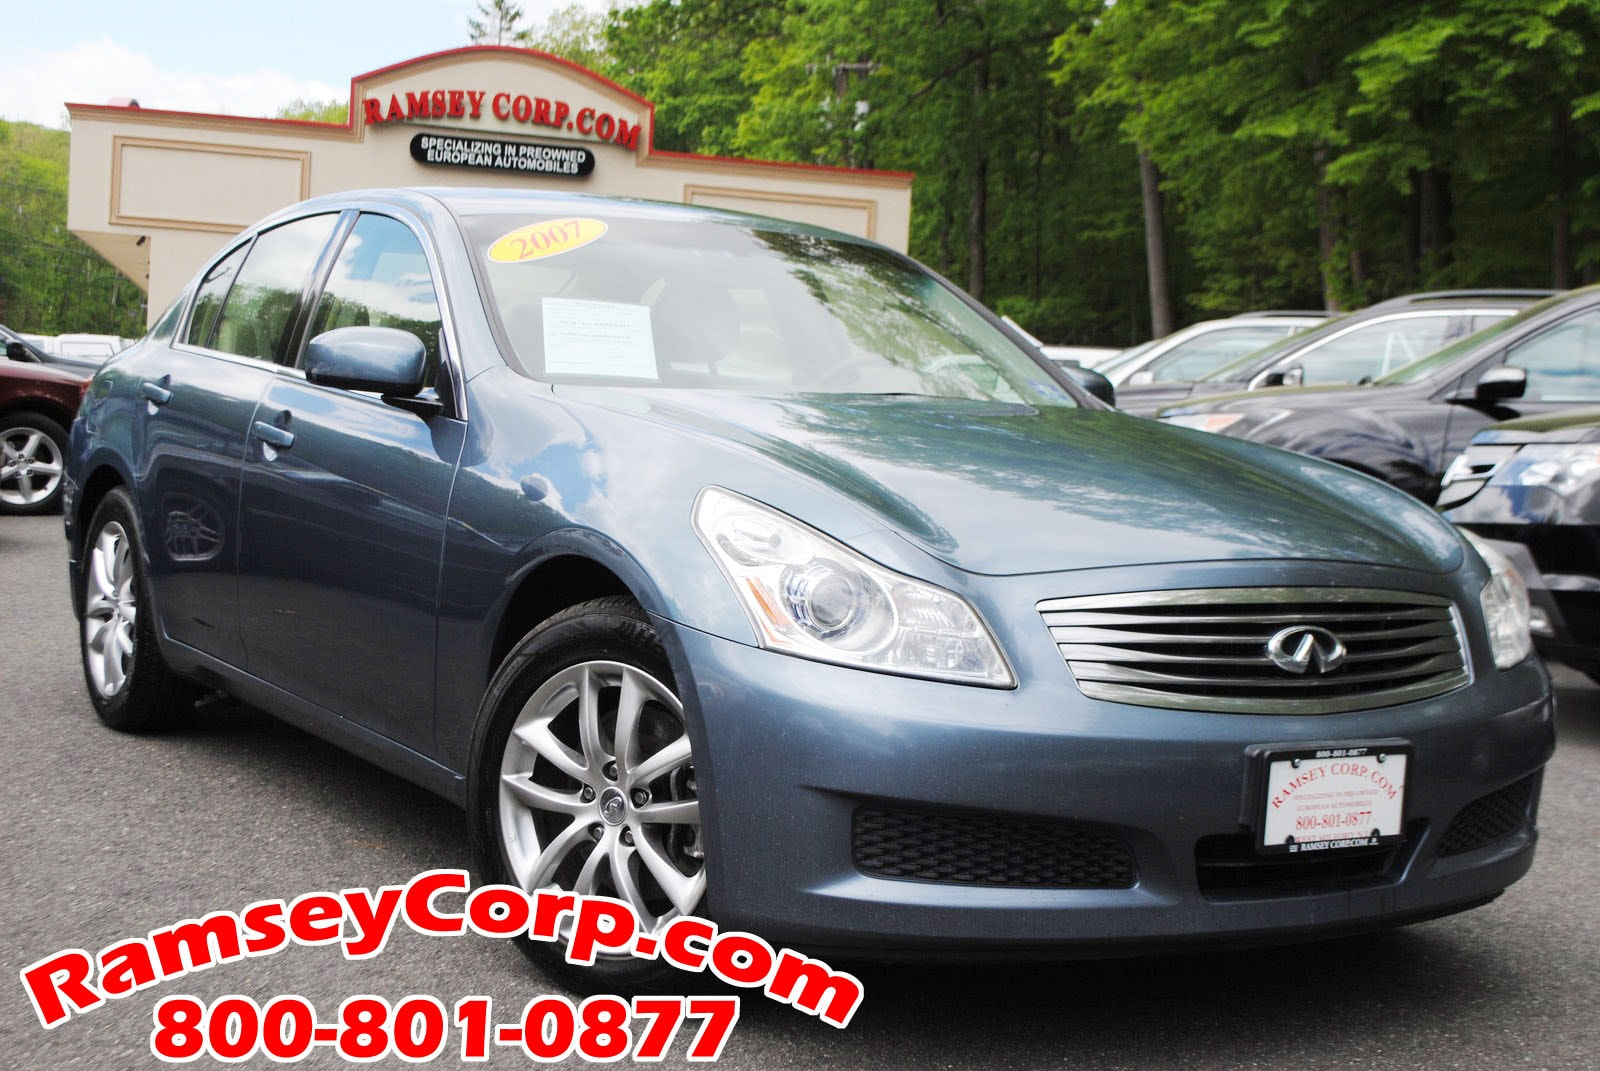 Used 2007 Infiniti G35x For Sale At Ramsey Corp Vin Jnkbv61fx7m802363